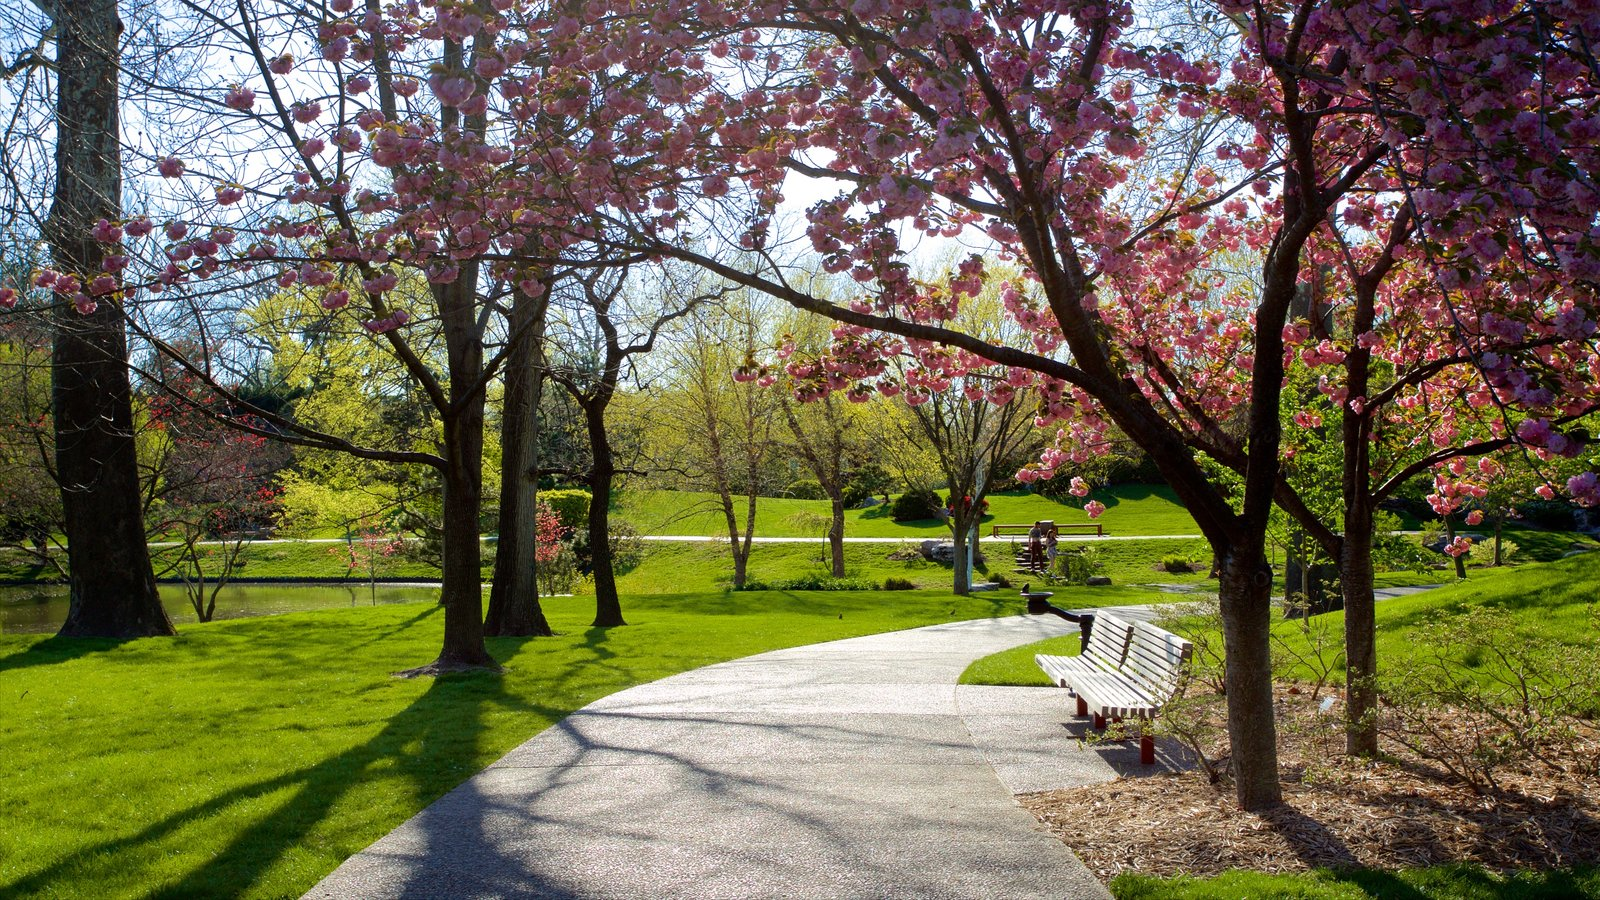 Missouri Botanical Gardens and Arboretum featuring a garden and flowers